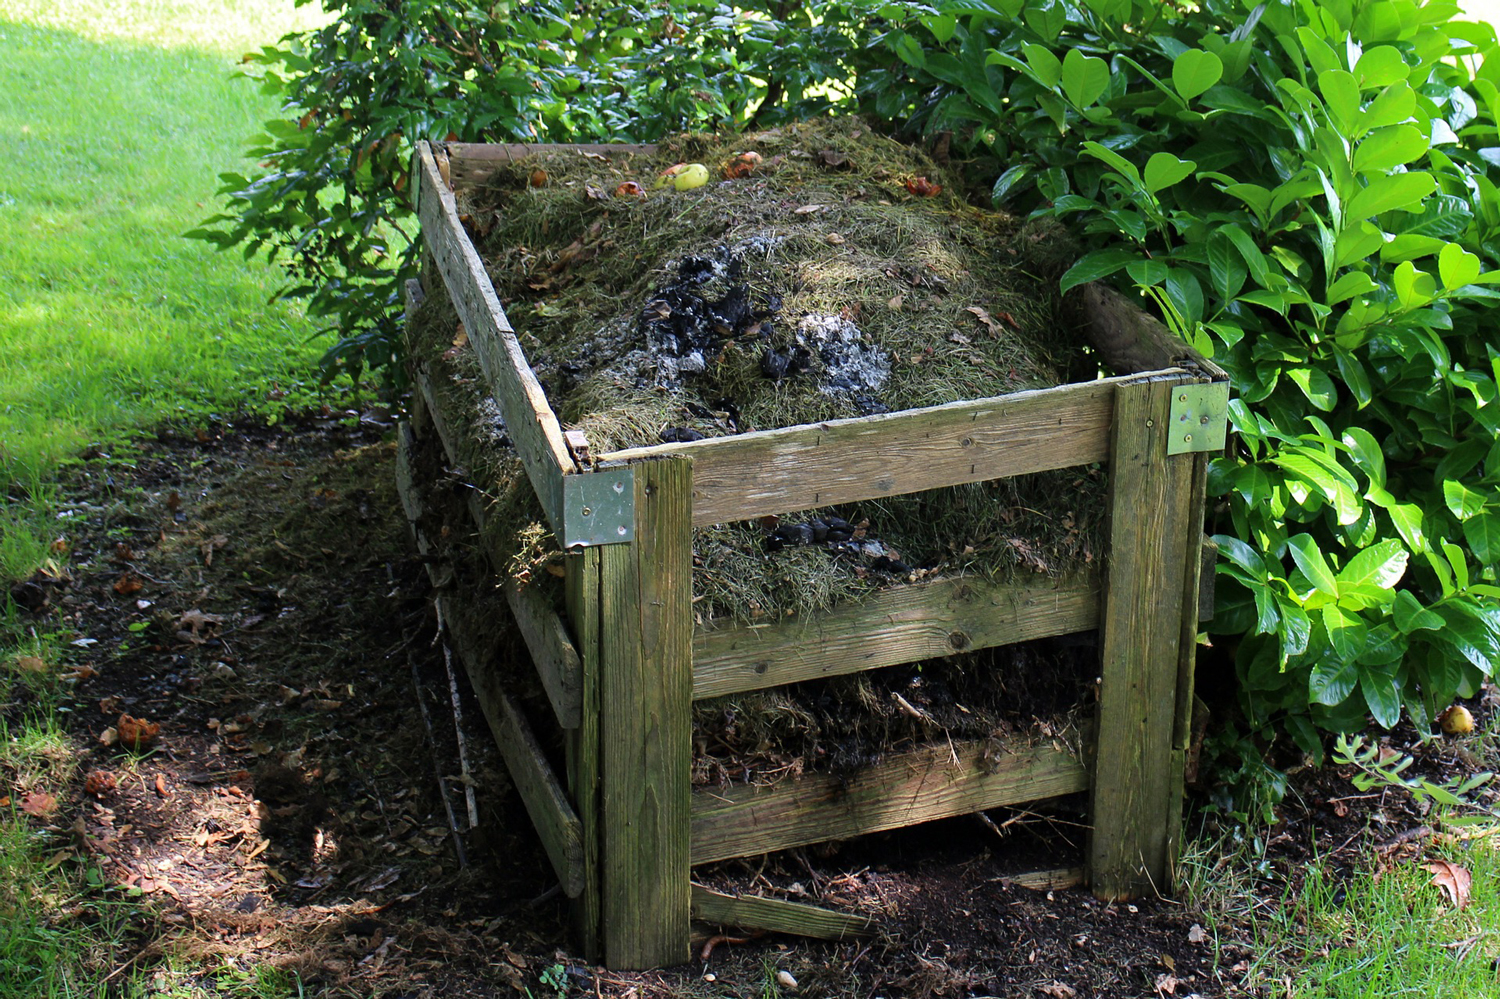 composting is part of winterizing a garden